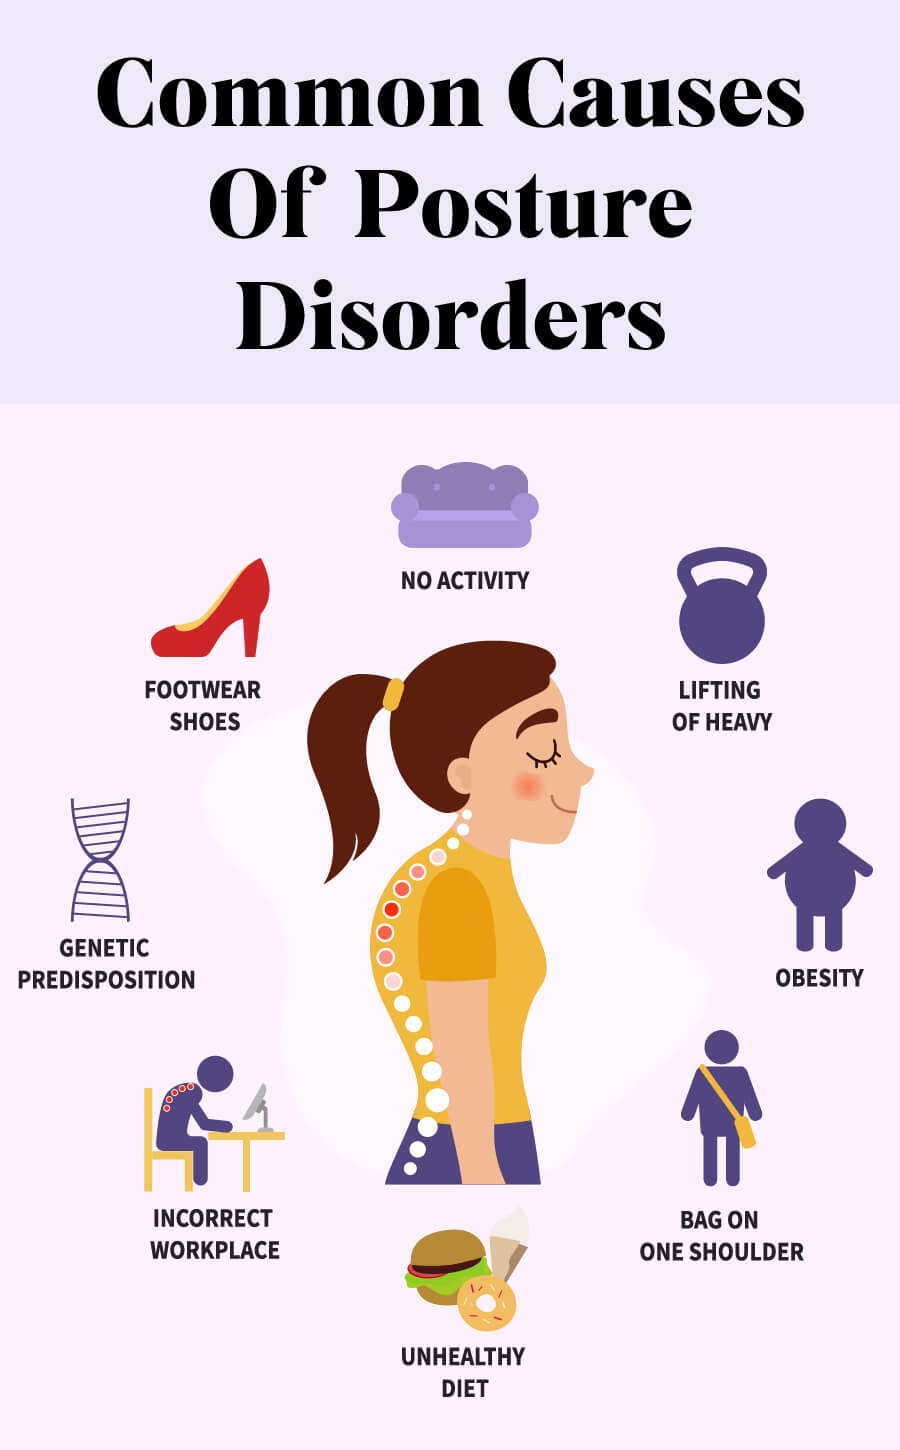 common causes of posture disorders infographic